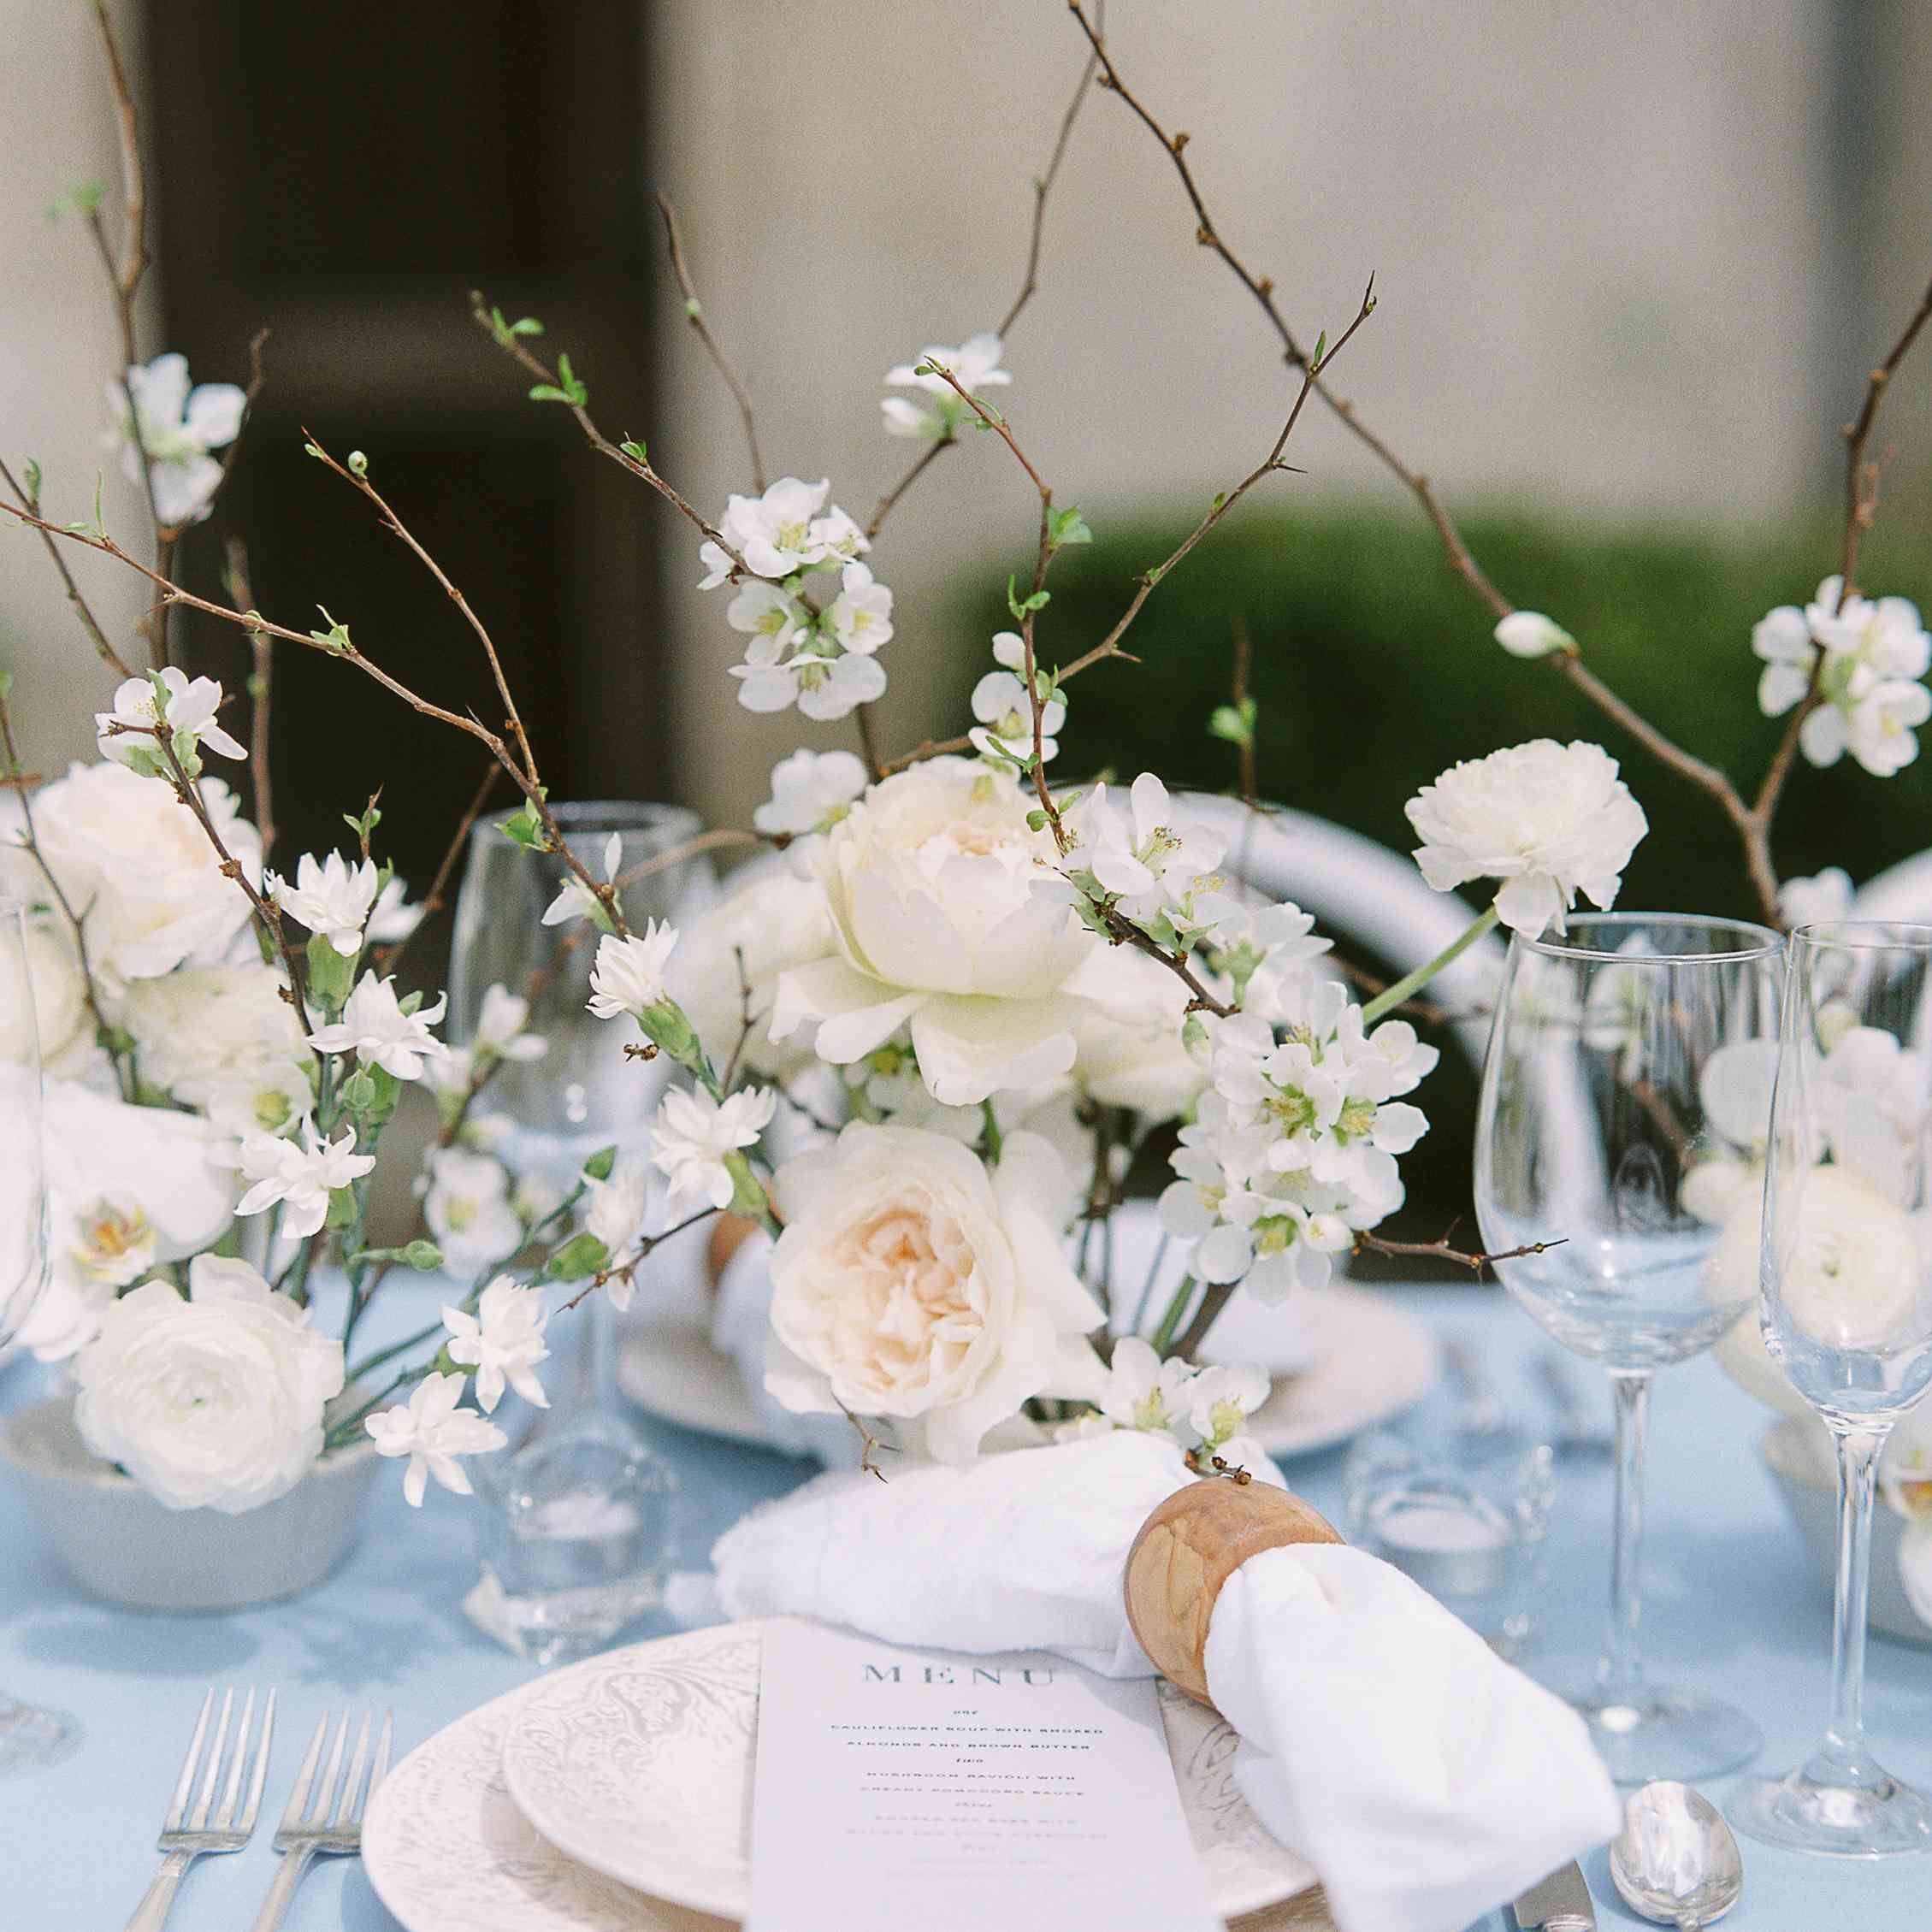 Table setting incorporating branches and white flowers